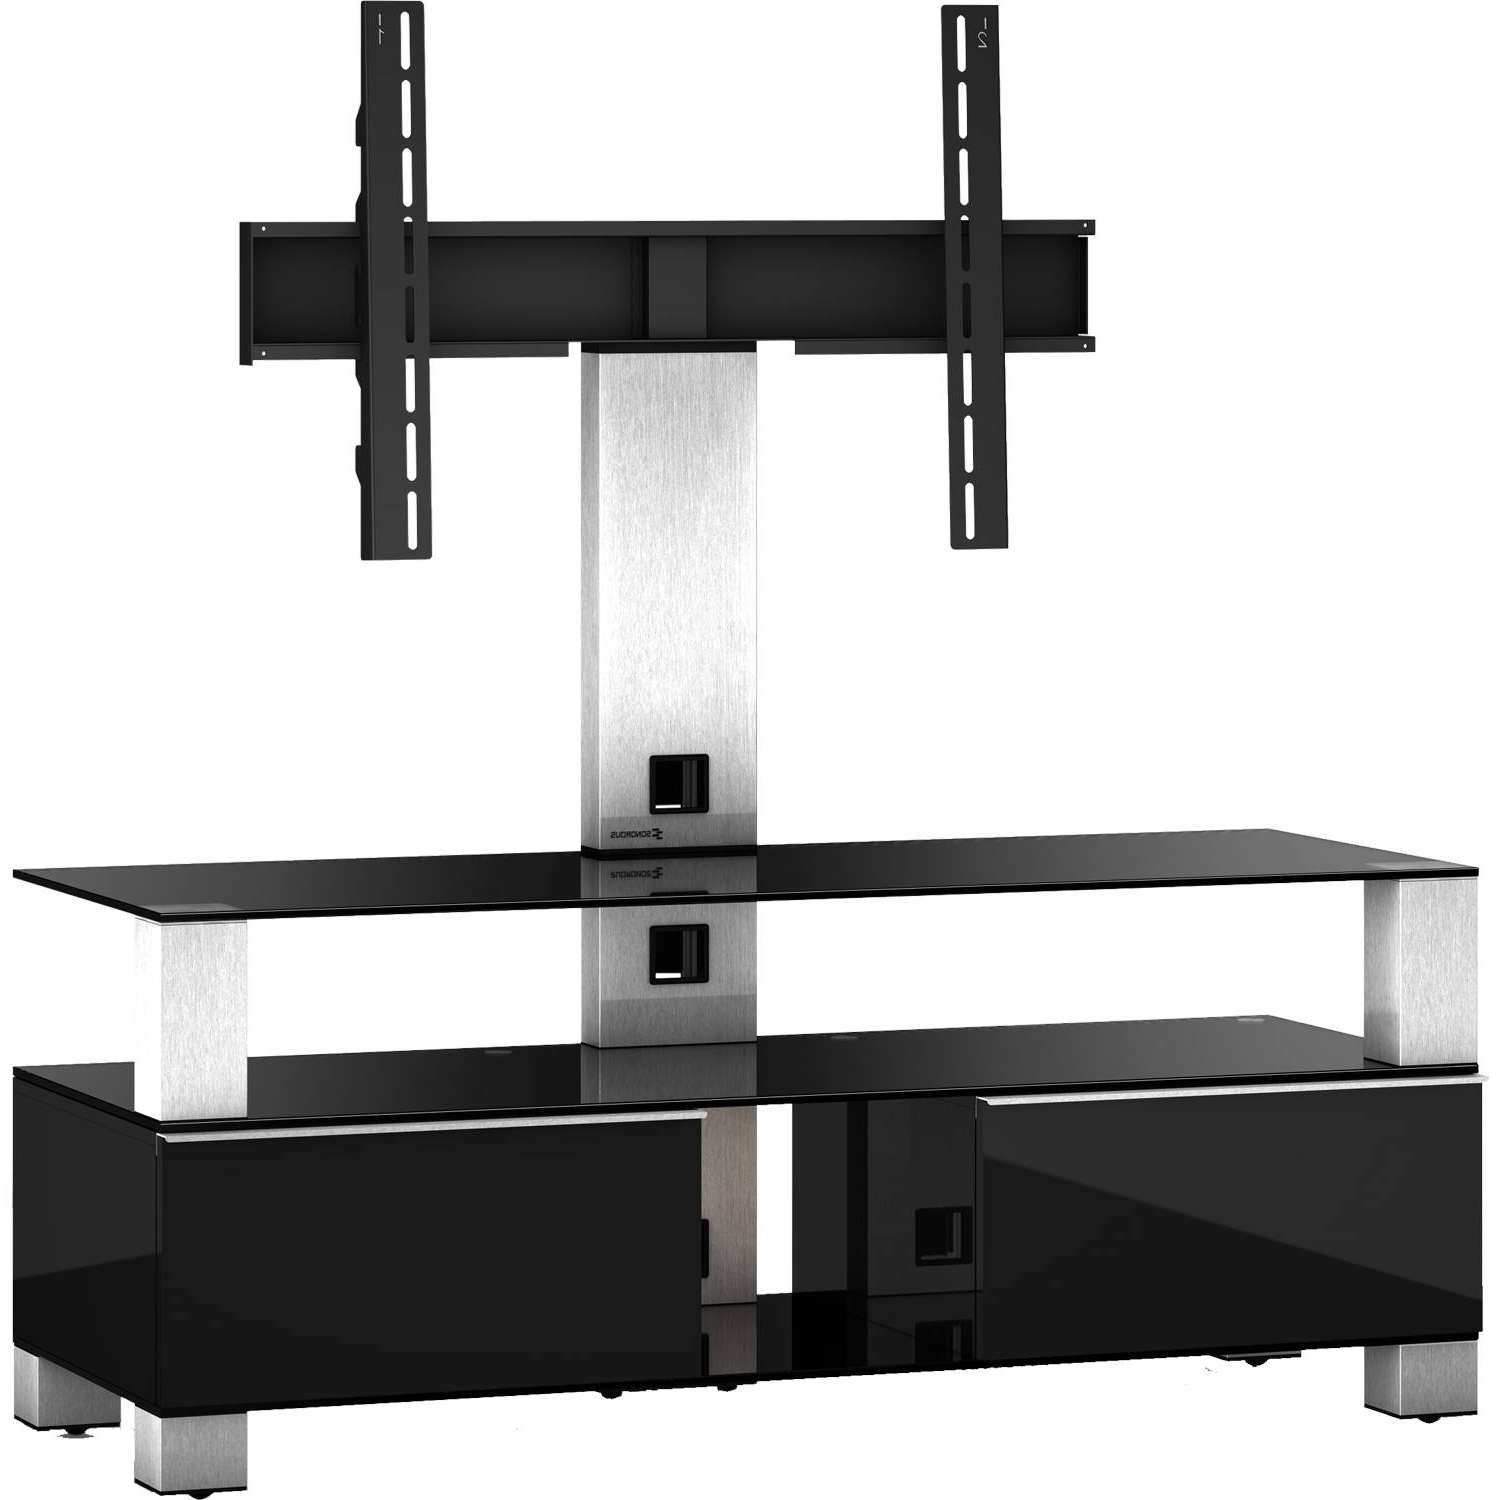 Tv Cabinet With Bracket – Imanisr For Tv Stands With Bracket (View 11 of 15)